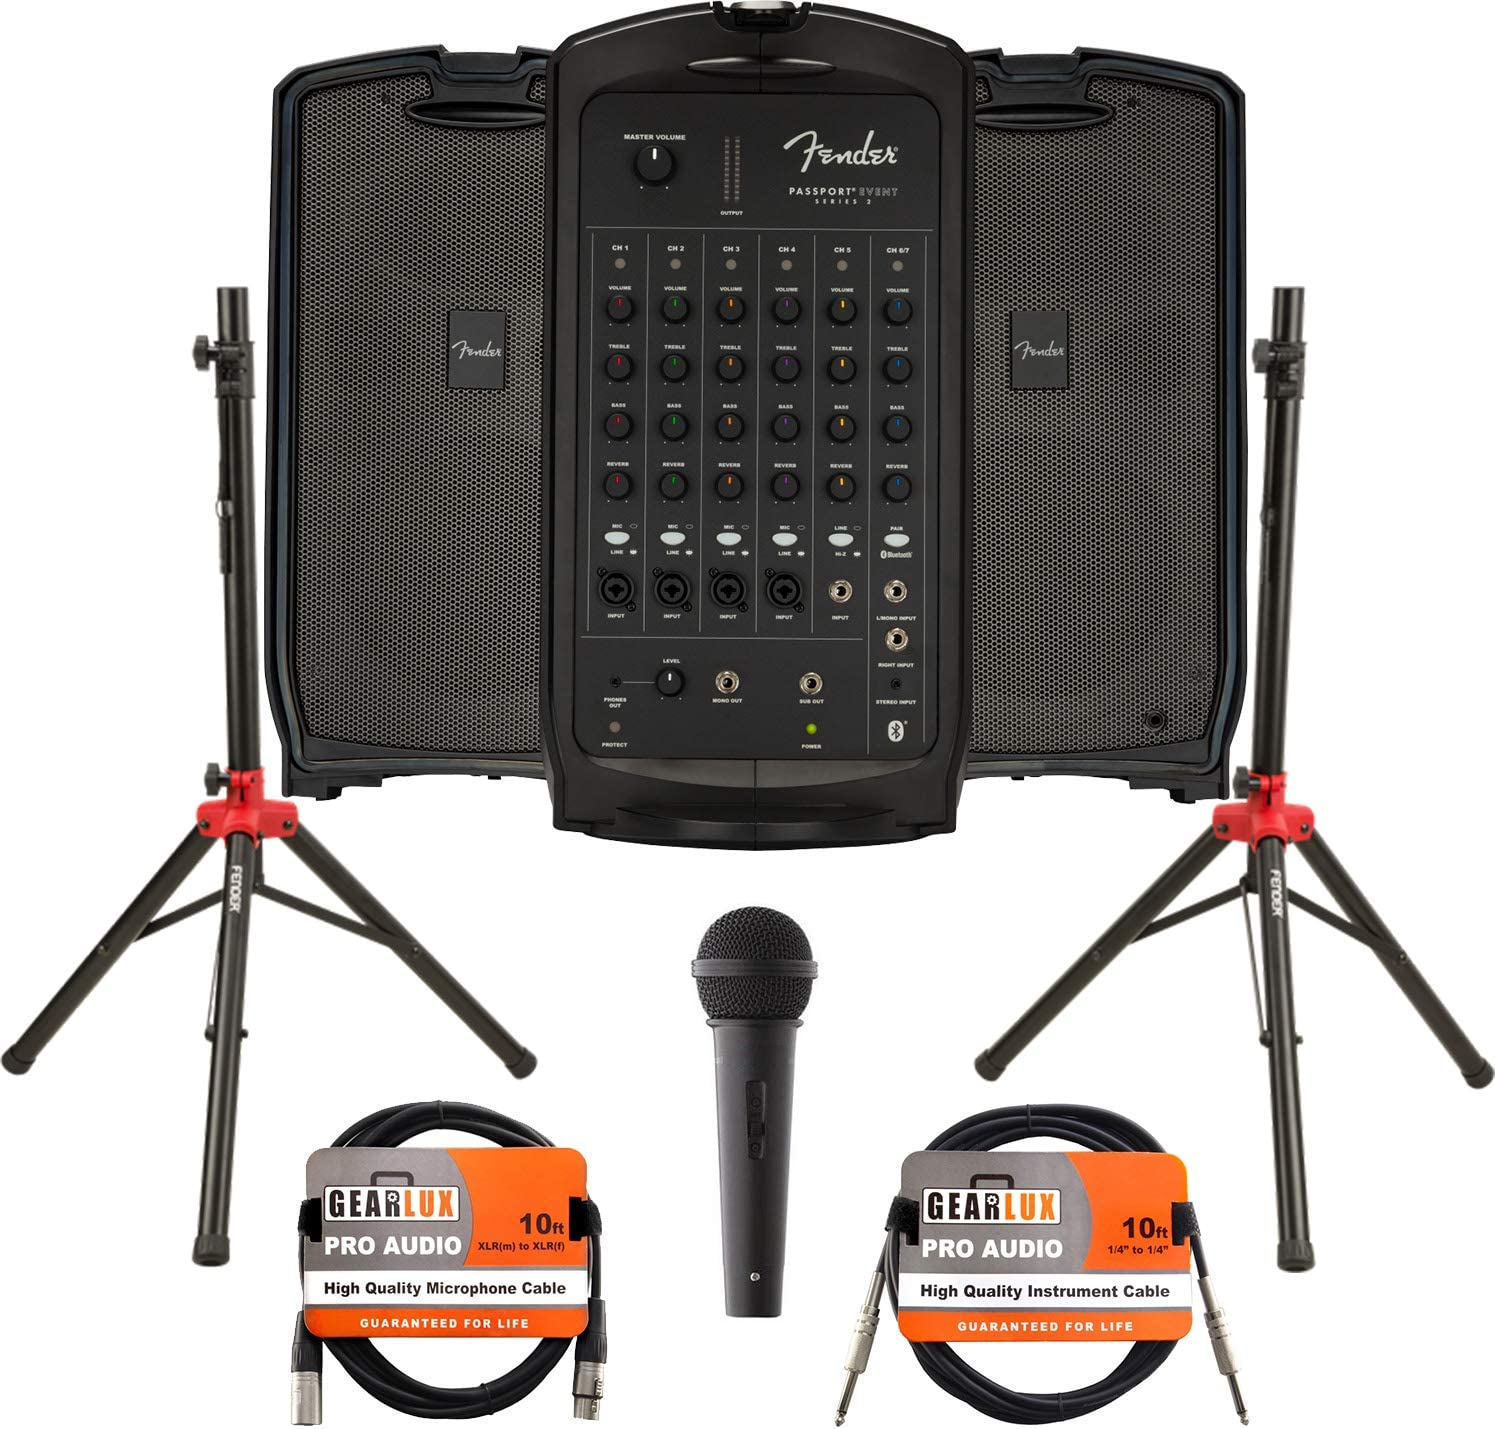 Fender Passport Event S2 Portable PA System Bundle with Compact Speaker Stands, Microphone, XLR Cable, and Instrument Cable